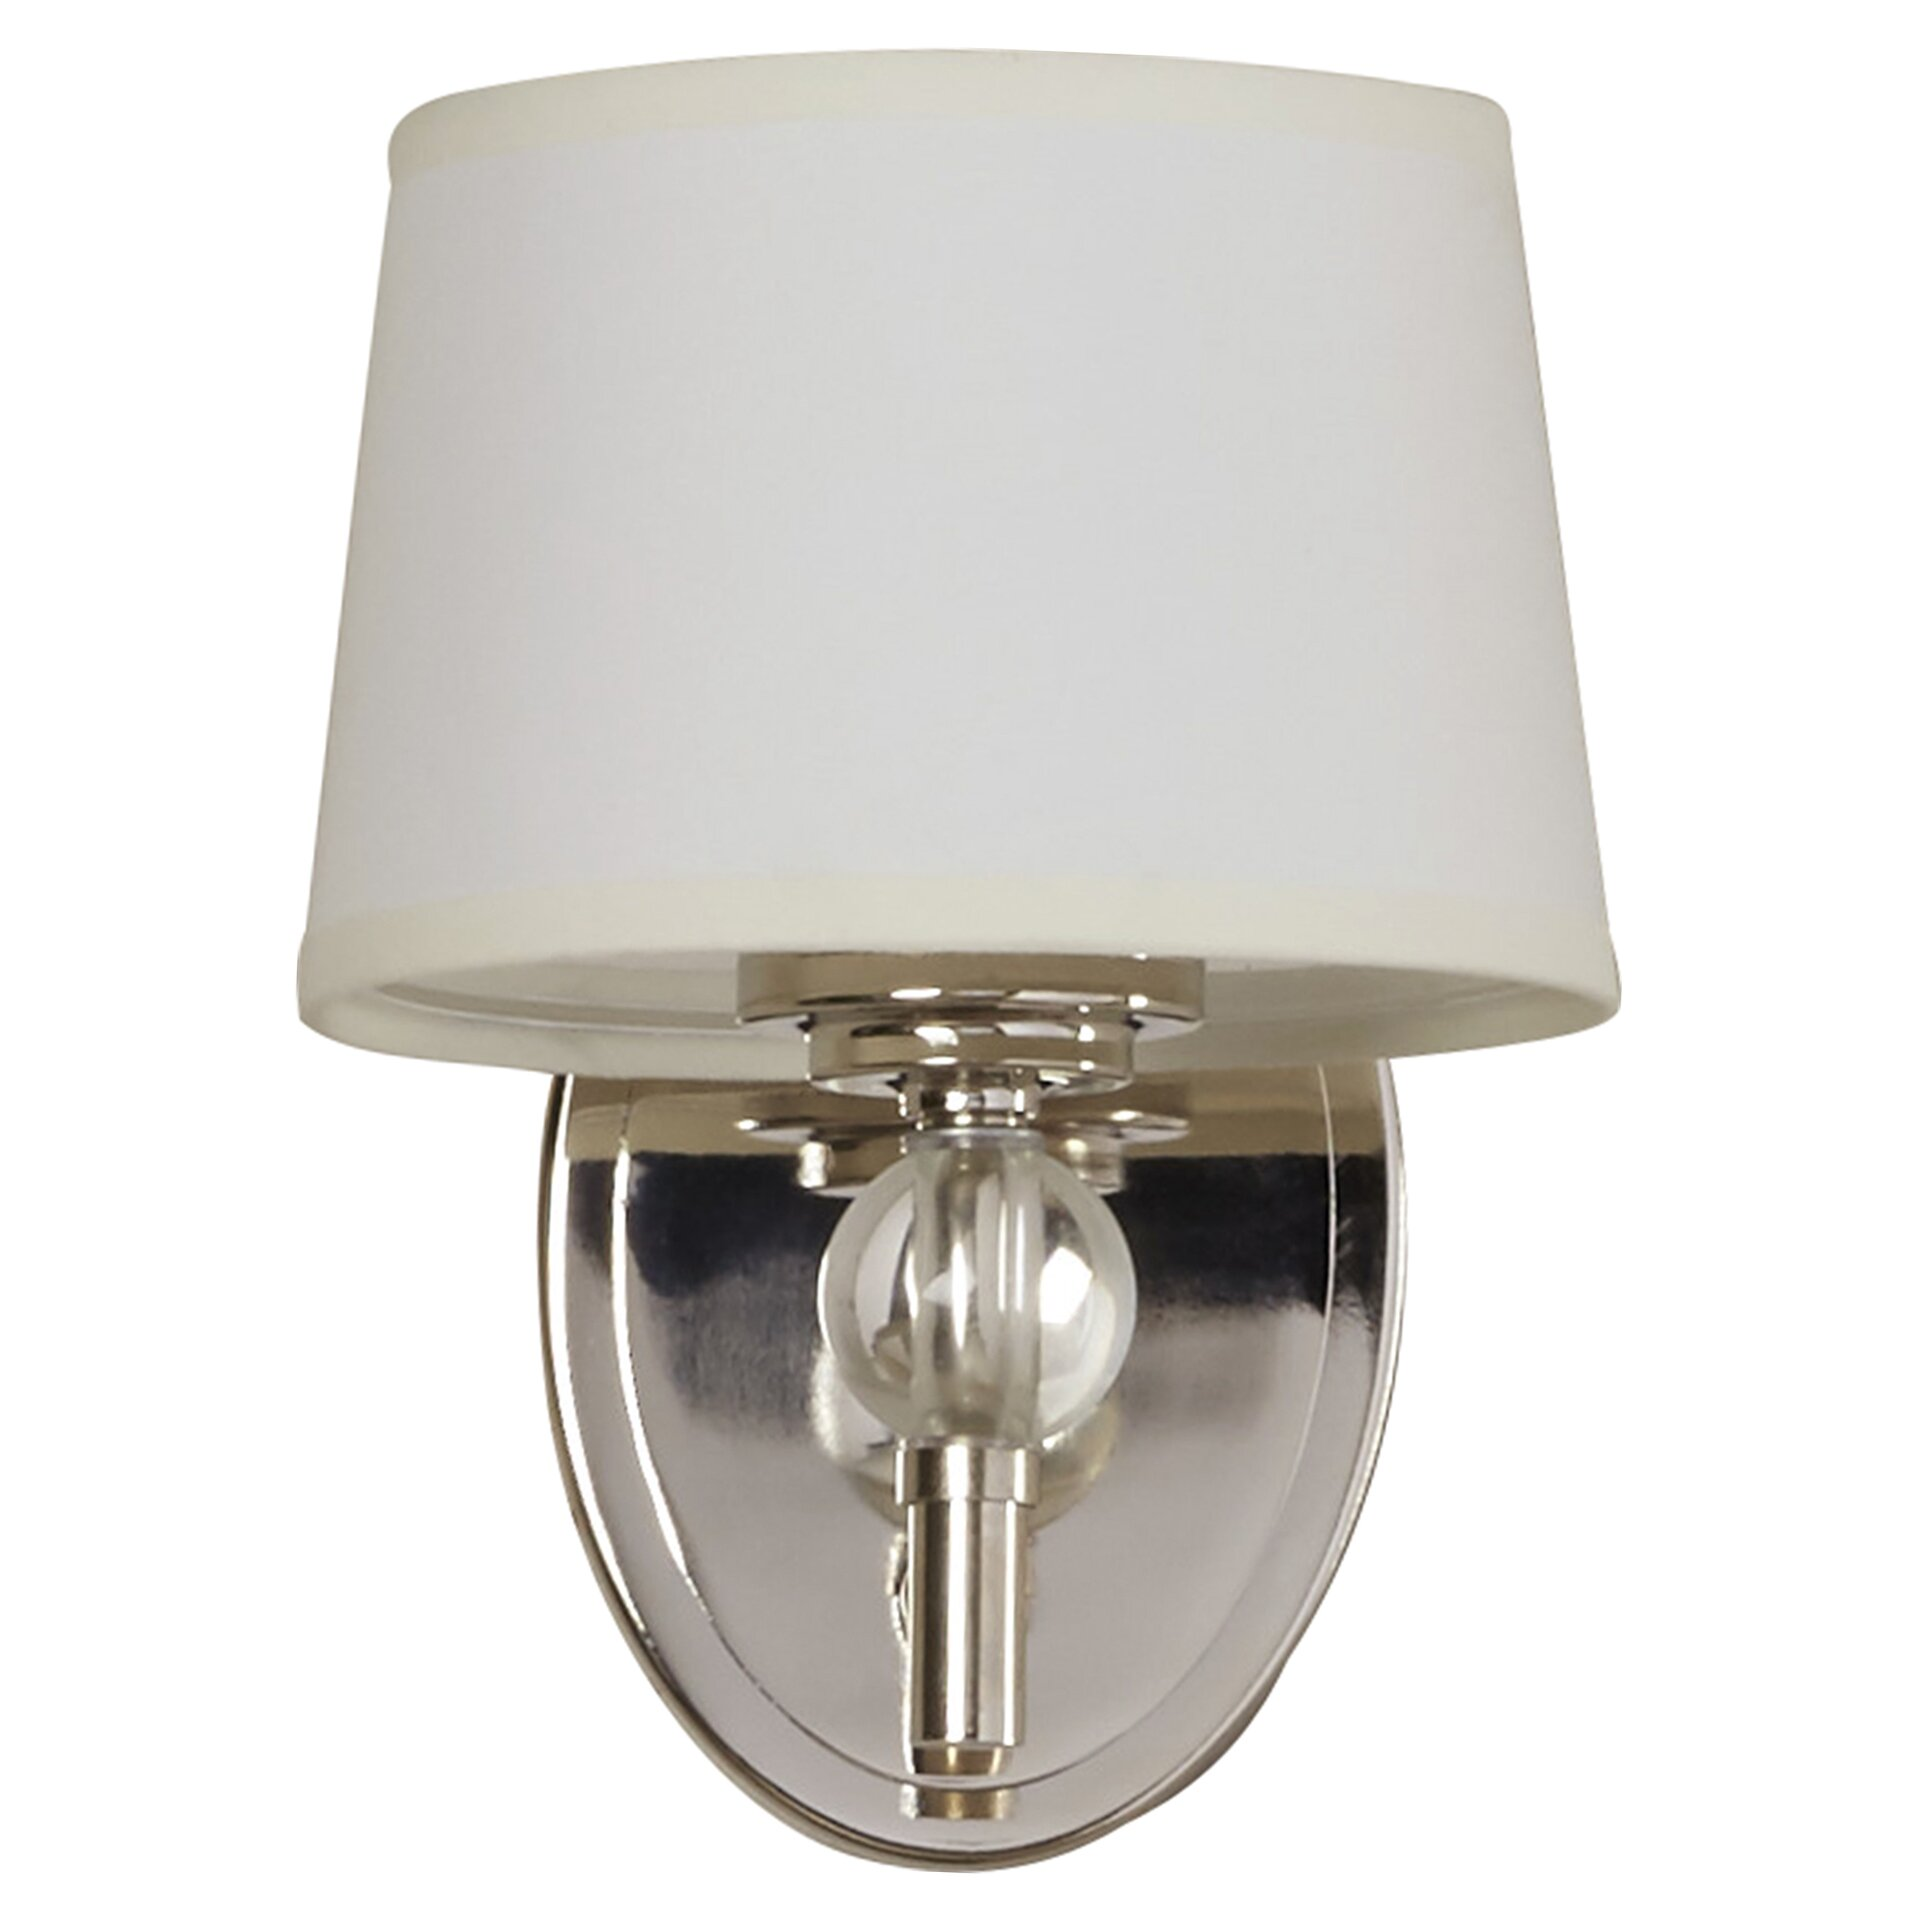 Wall Sconce With Crystal Ball : House of Hampton Gus Crystal Ball 1 Light Wall Sconce & Reviews Wayfair